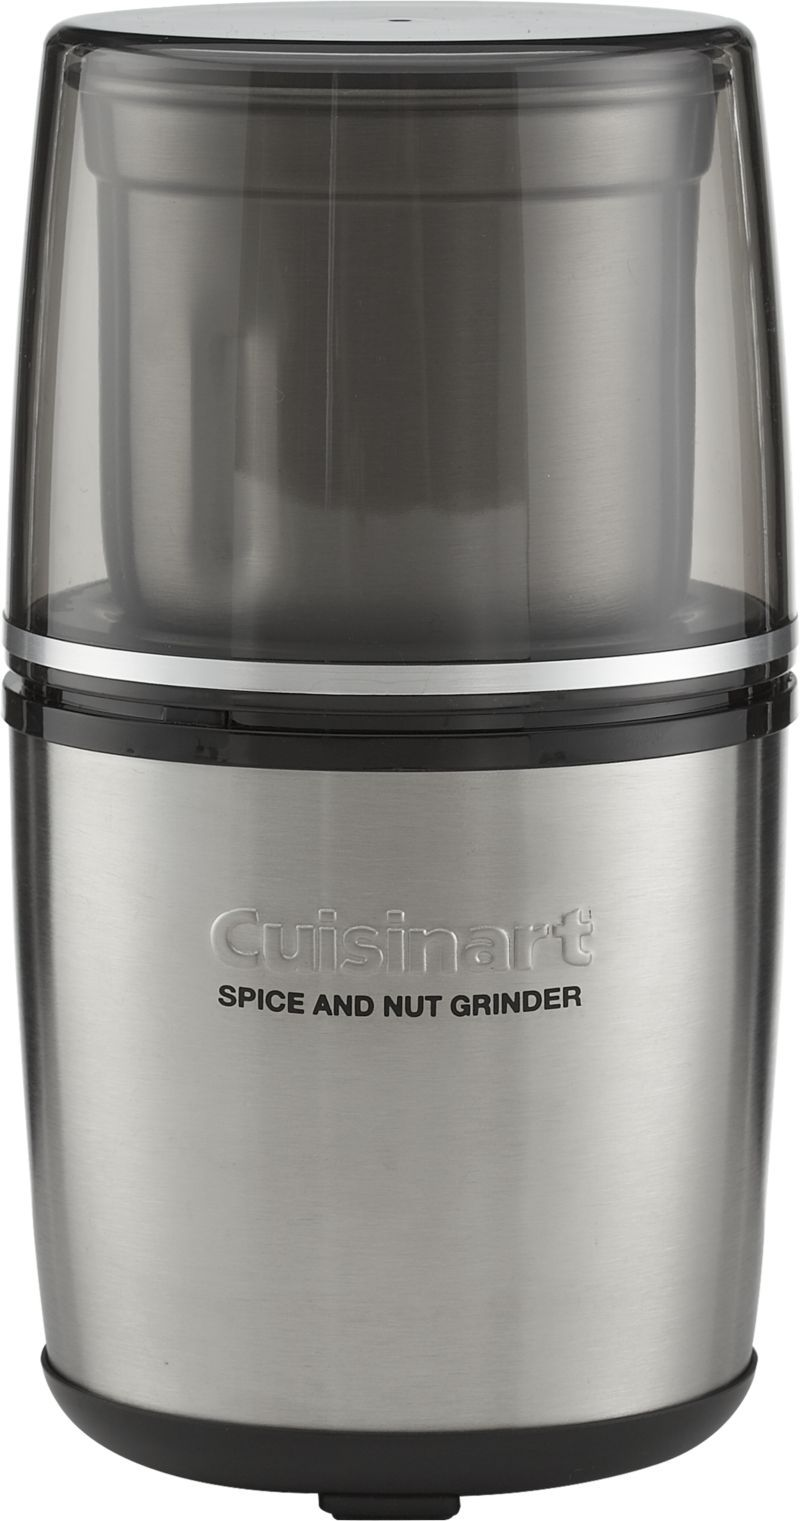 Cuisinart coffeespice grinder reviews crate and